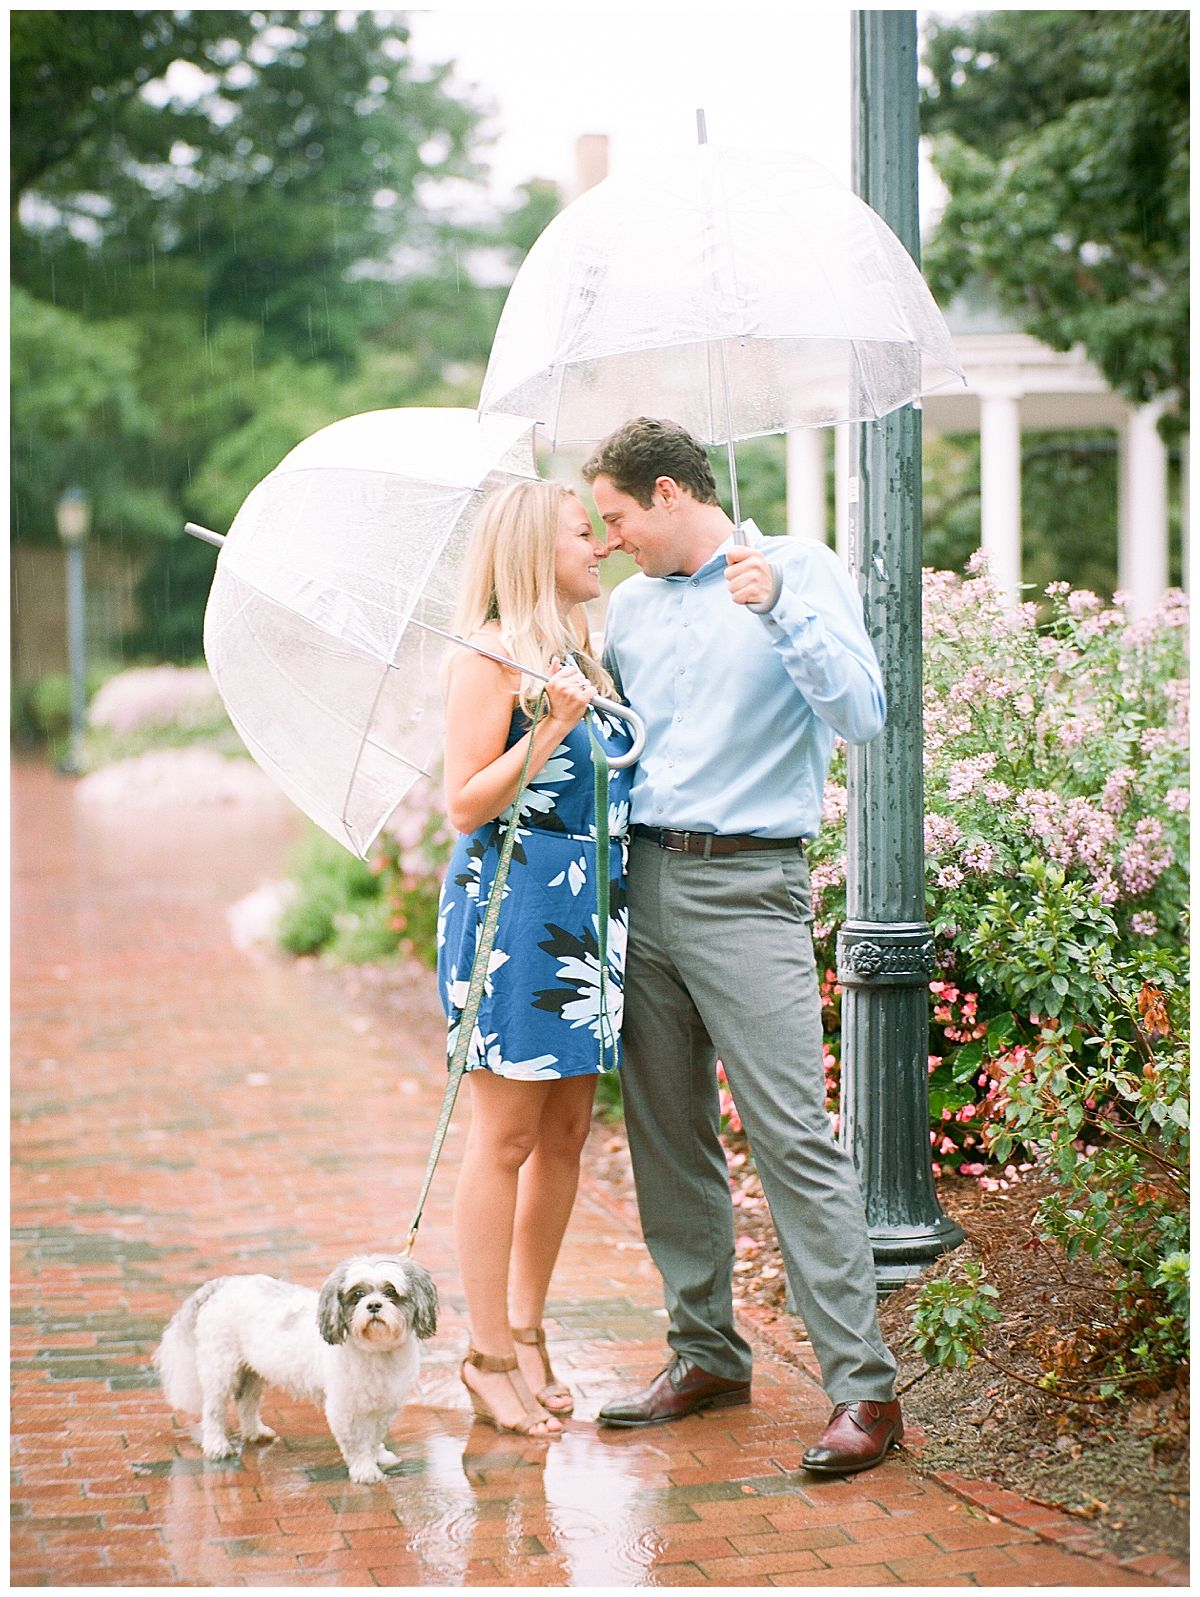 Drizzly Engagement Session At Unc Chapel Hill Nc Katherine Colby Unc Chapel Hill Engagement Session Photography Wedding Family